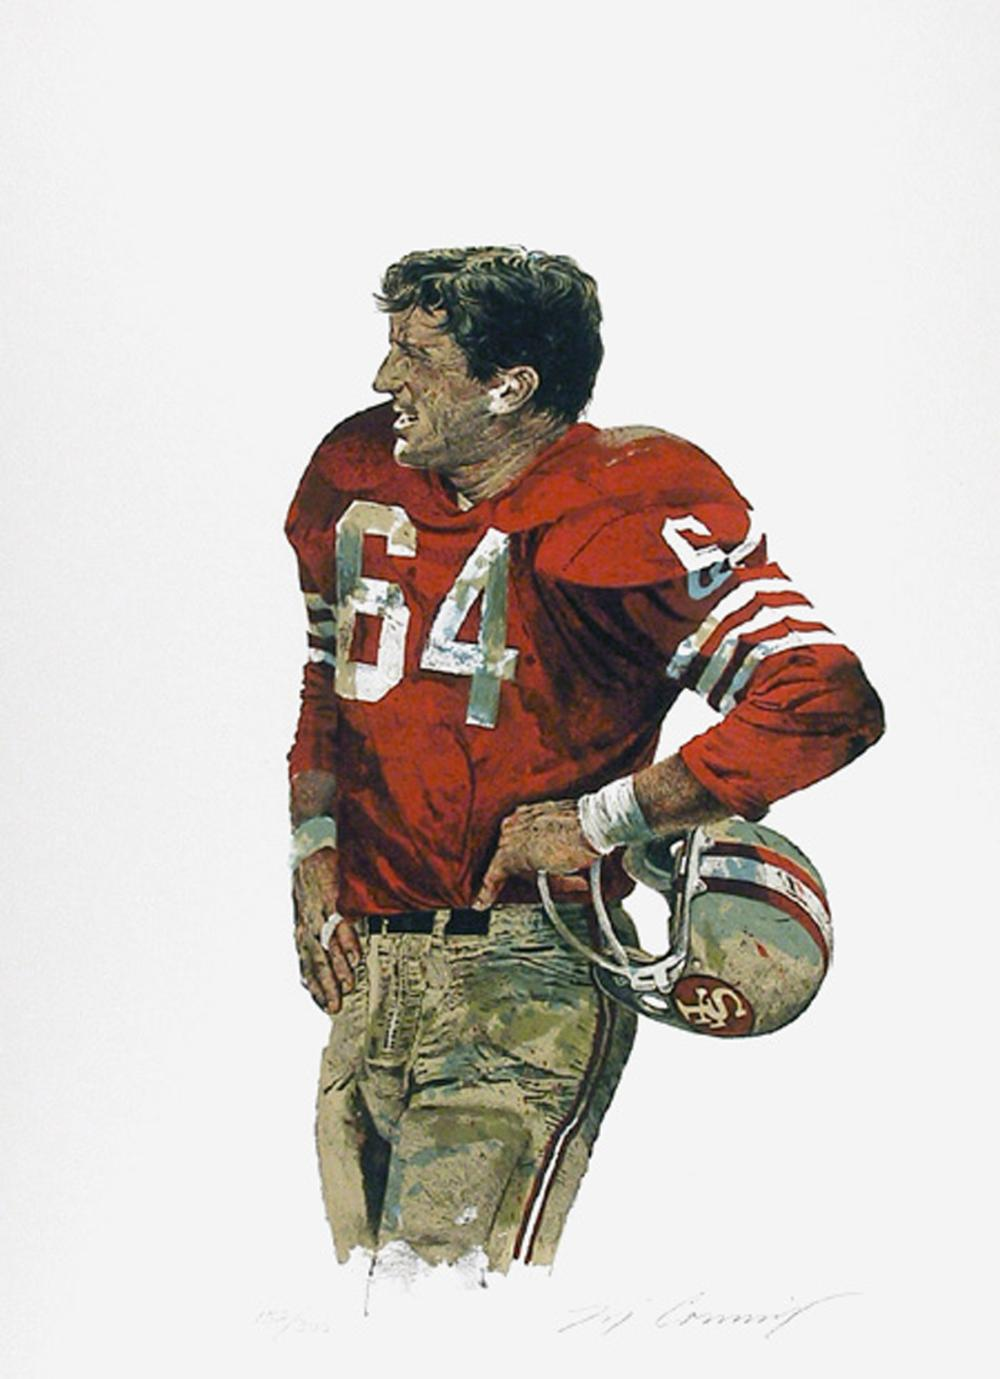 Merv Corning, Old Pro (San Francisco 49ers), Lithograph